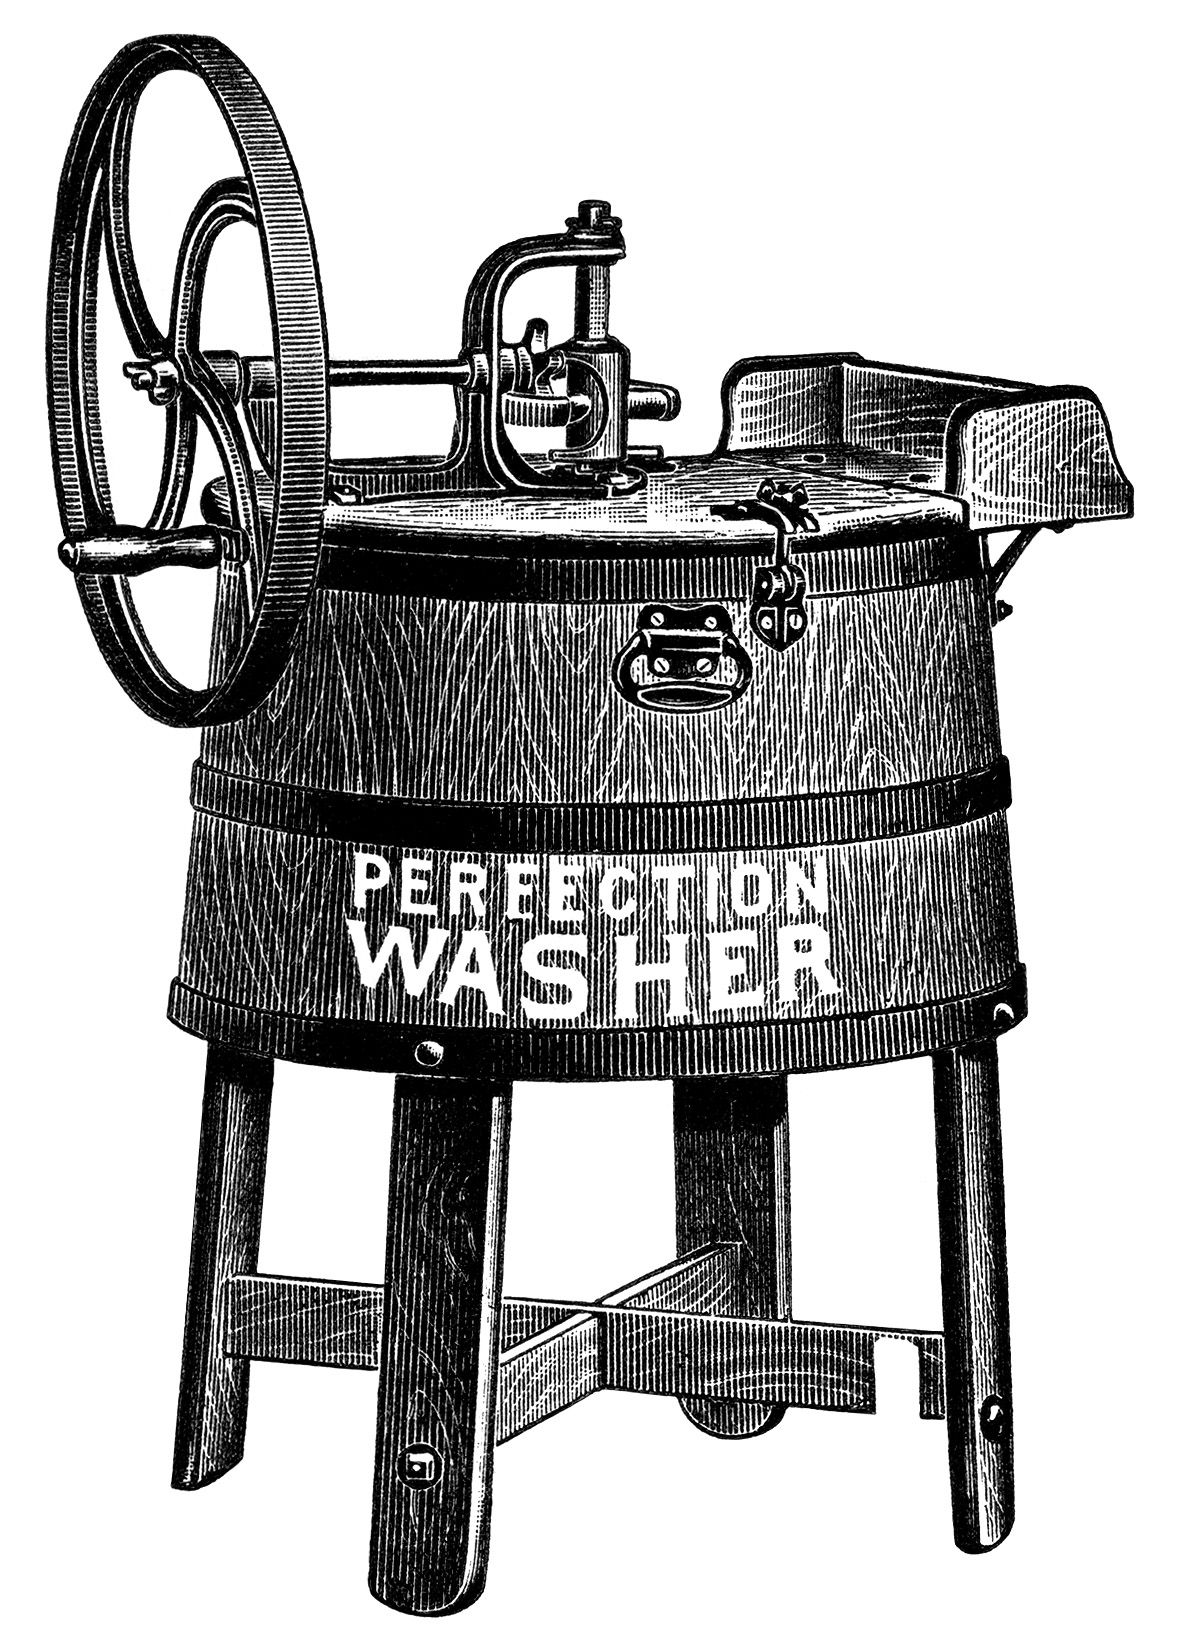 old catalogue ad, vintage laundry clip art, antique washing.